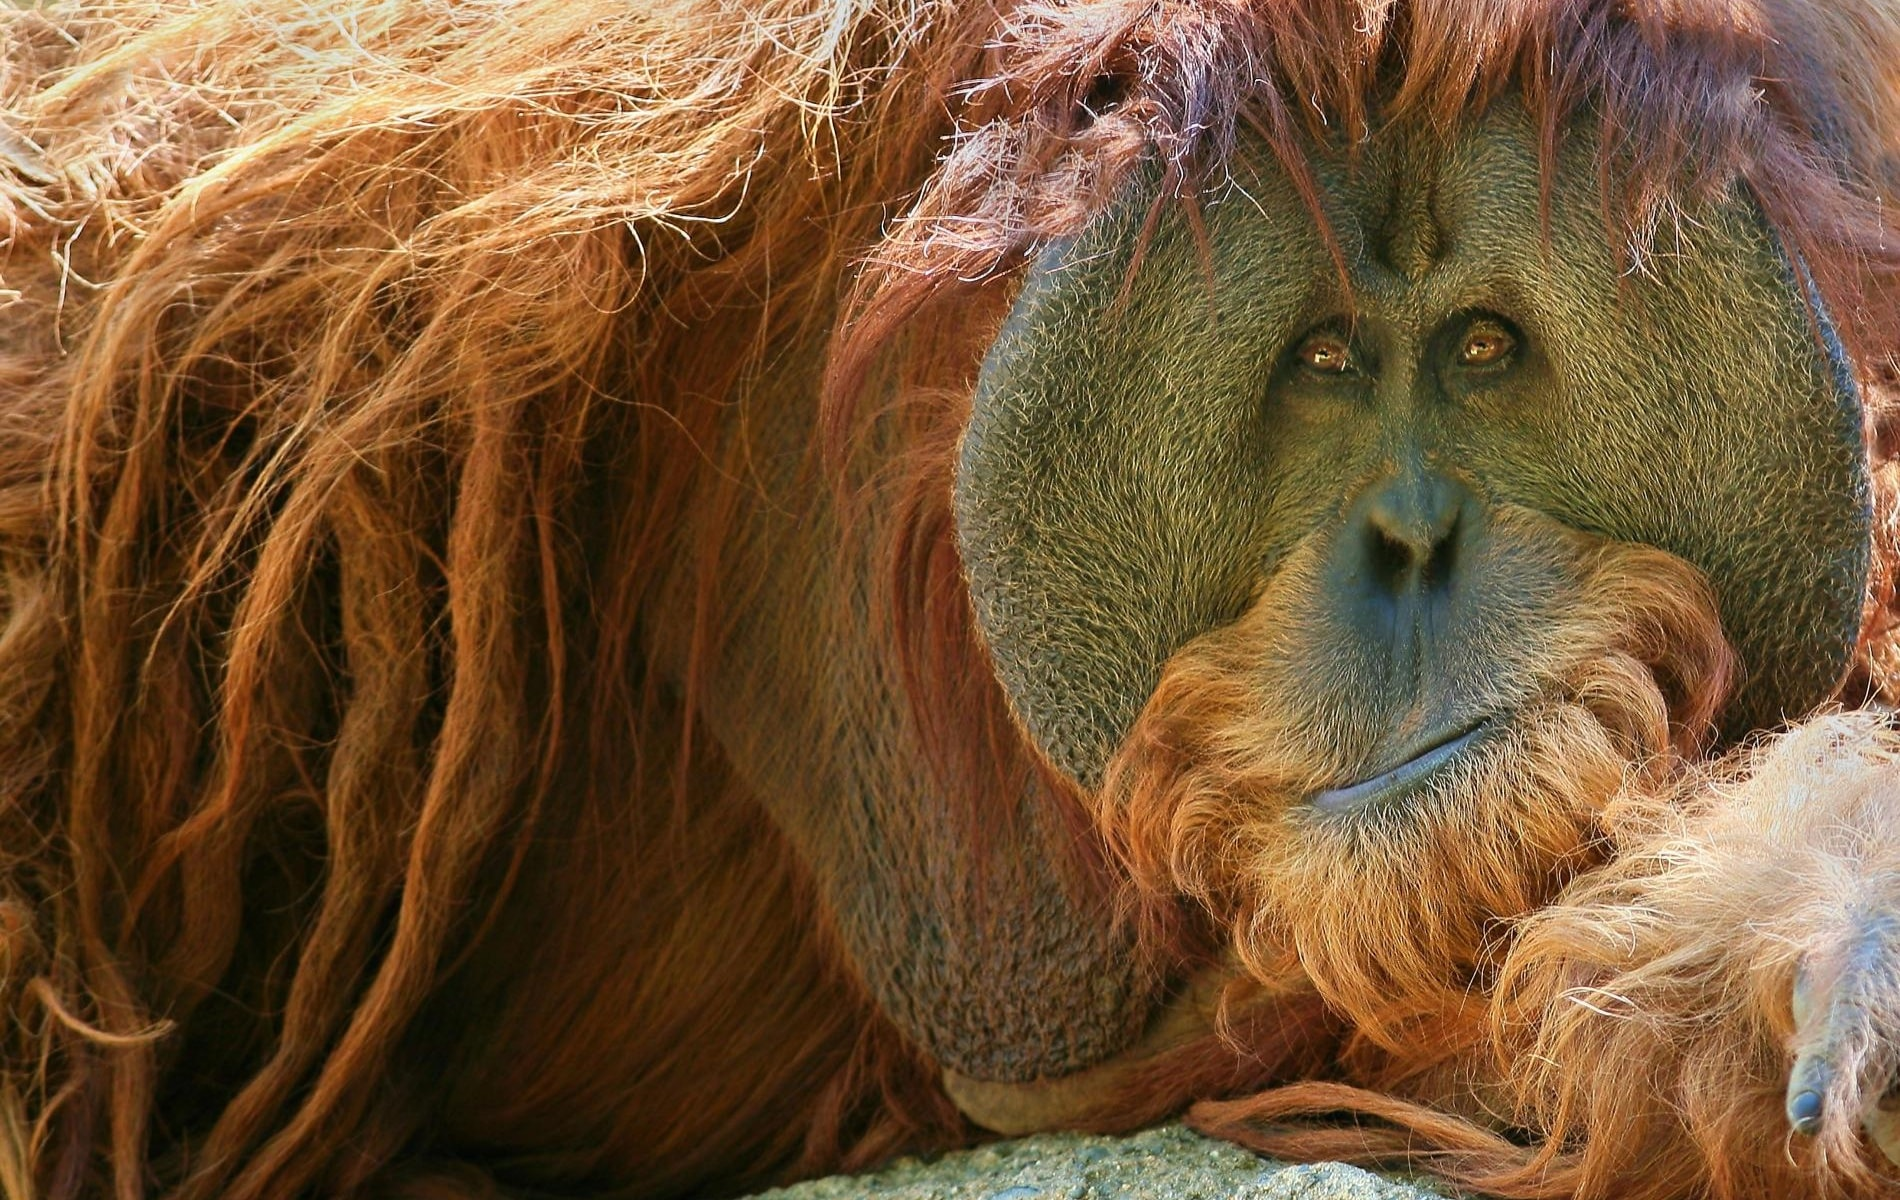 Orangutan desktop wallpaper